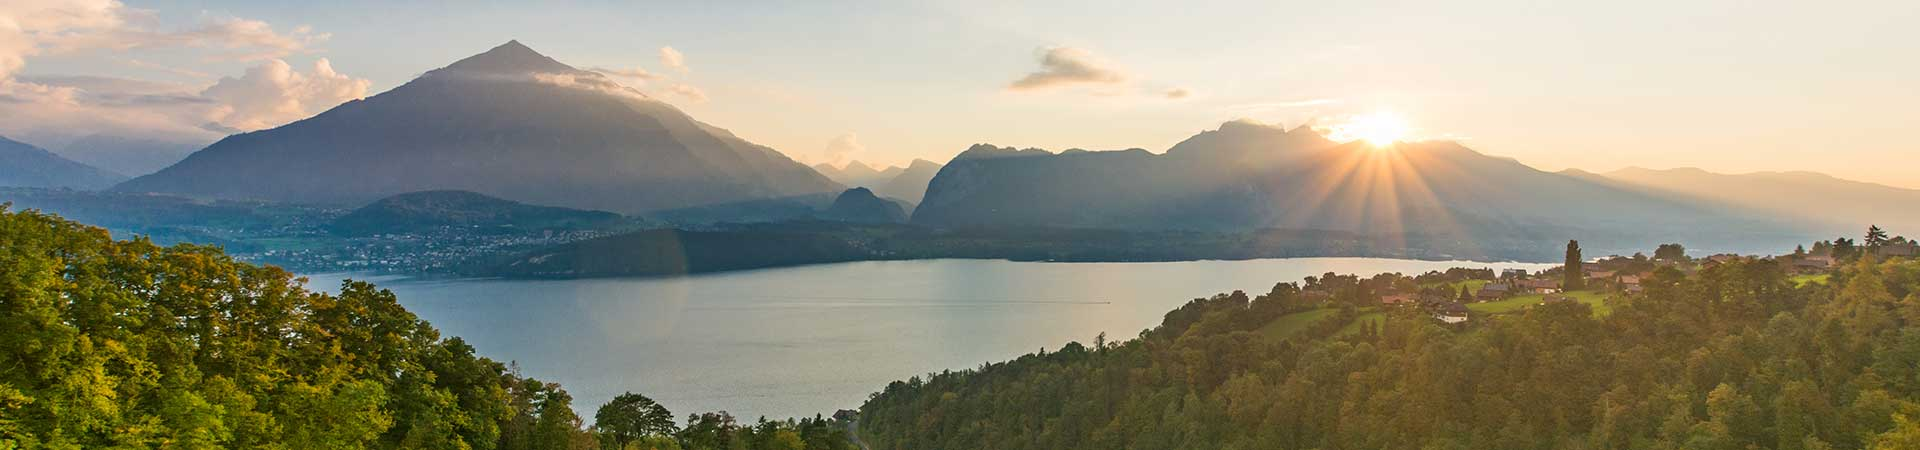 Solbadhoted Sigriswil Thunersee